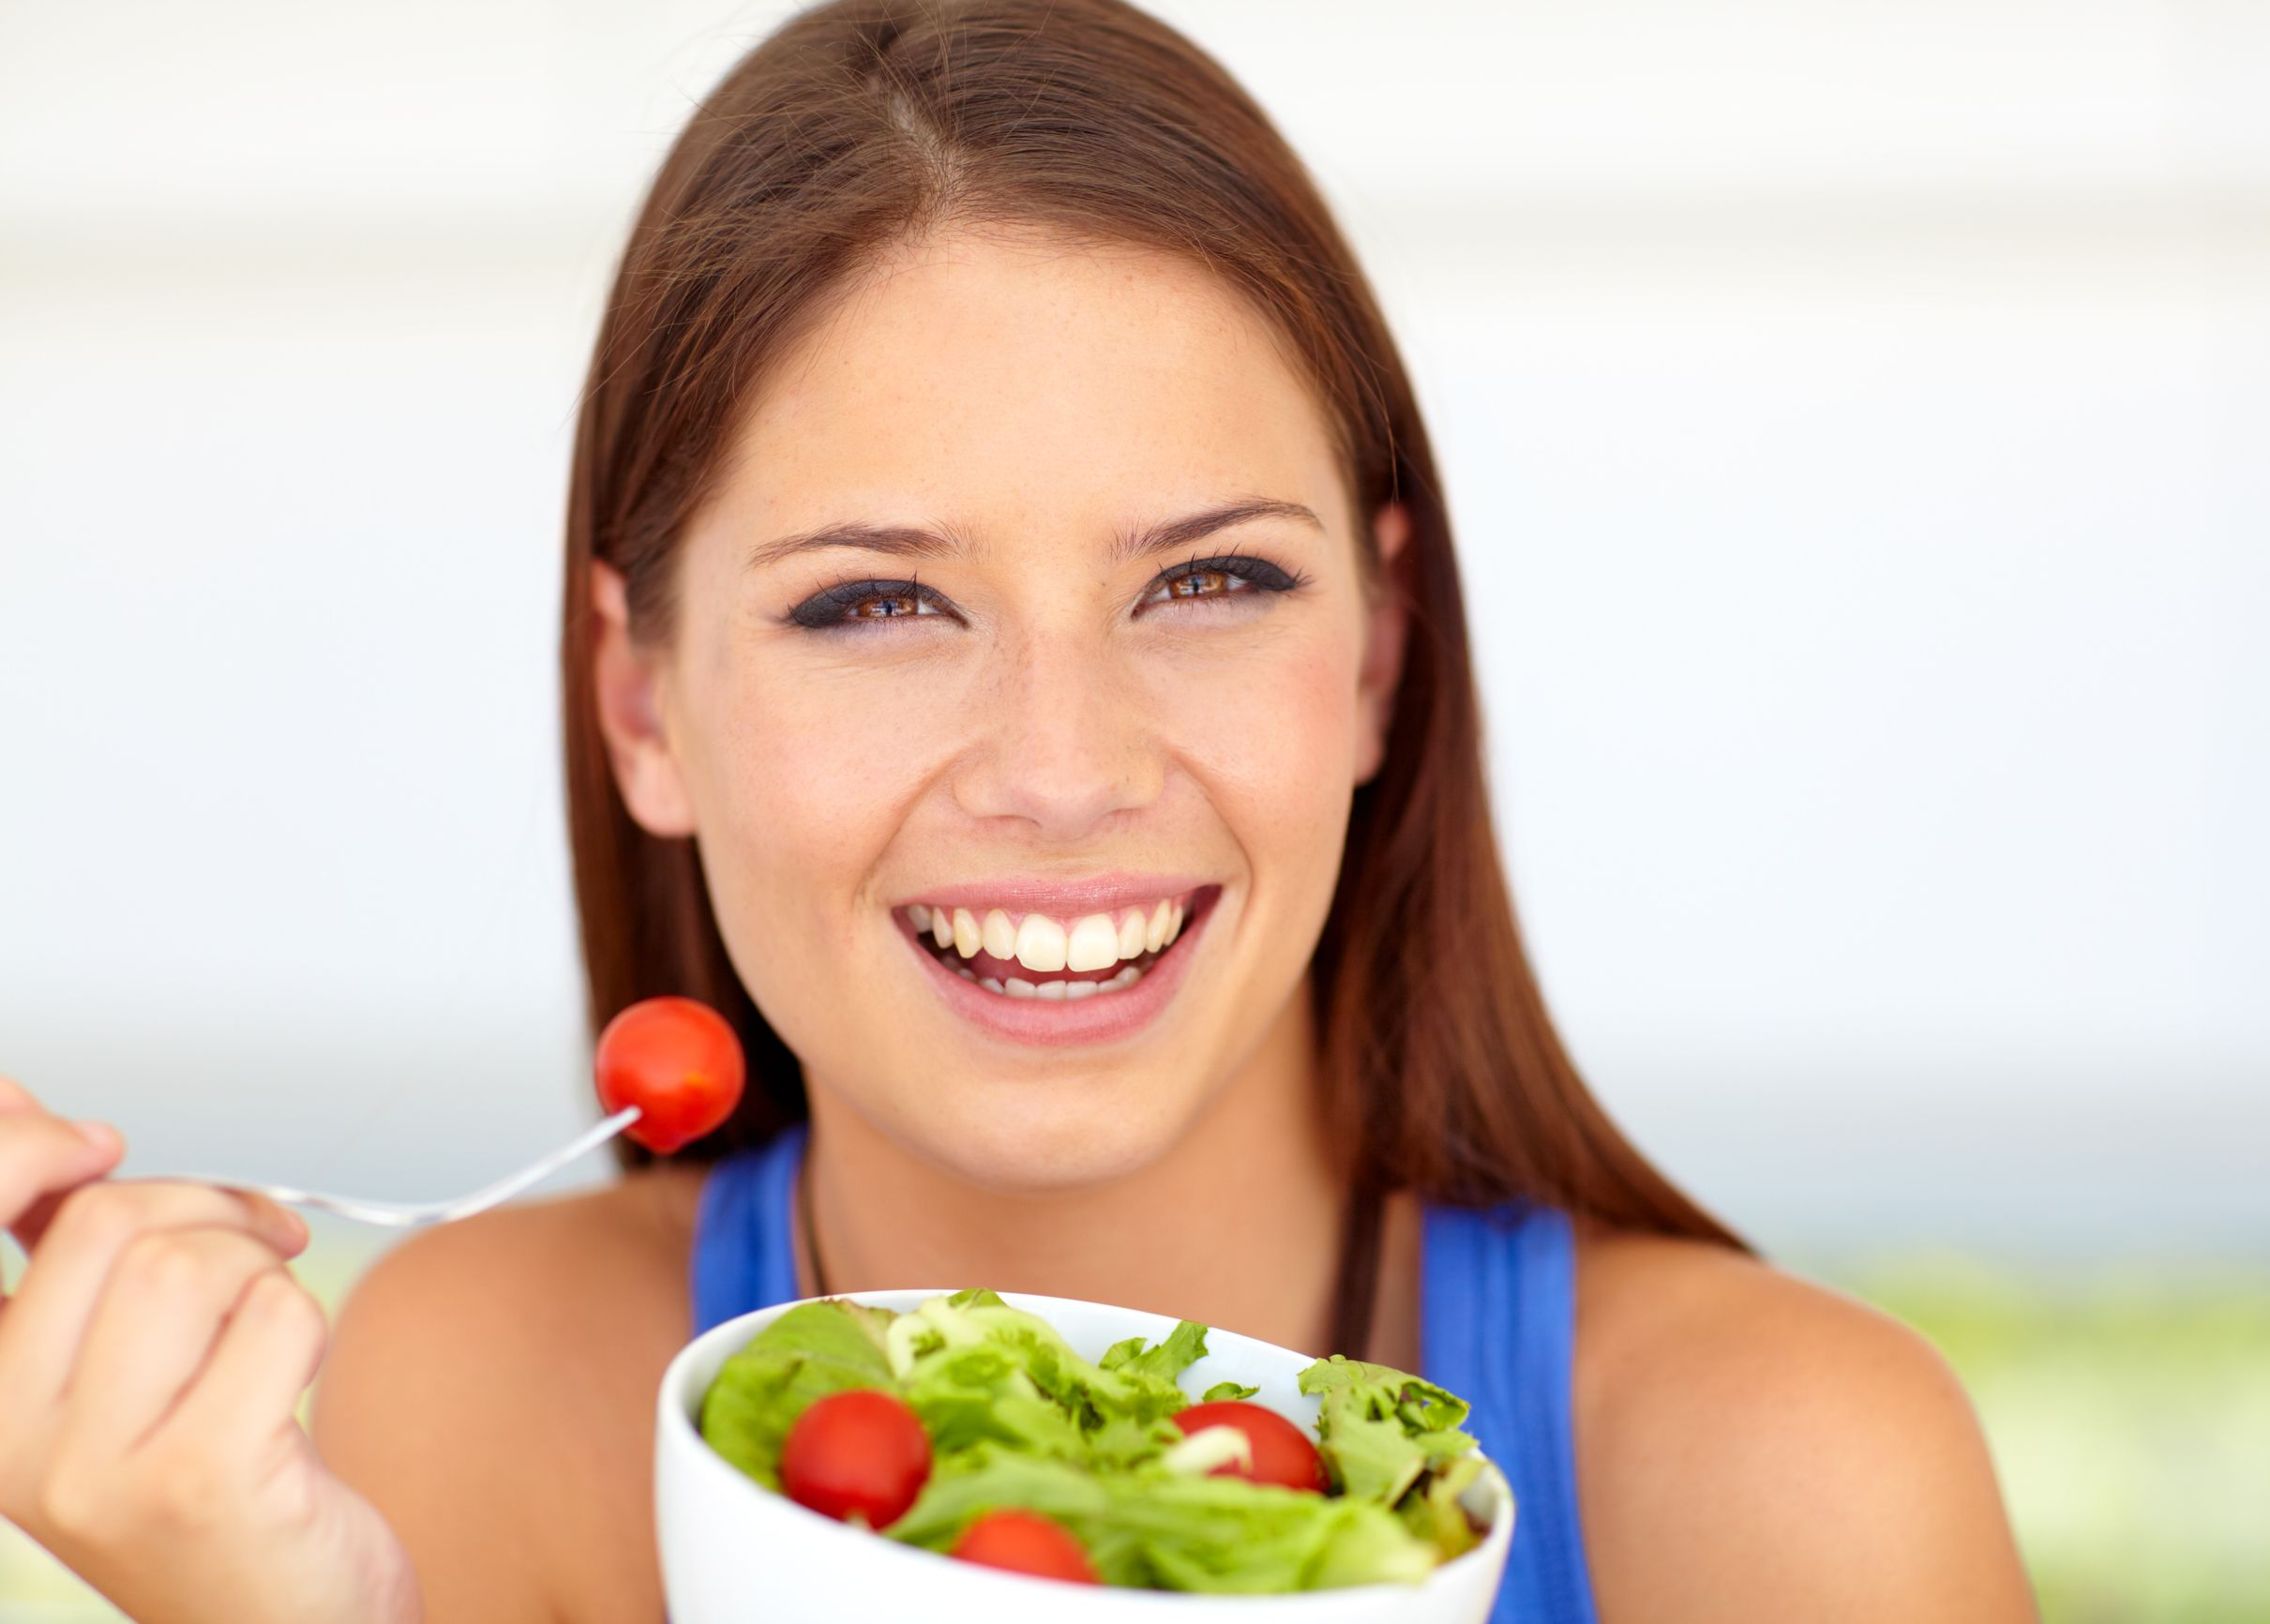 Lovely young woman enjoying a healthy green salad | Health&Fitness Talk